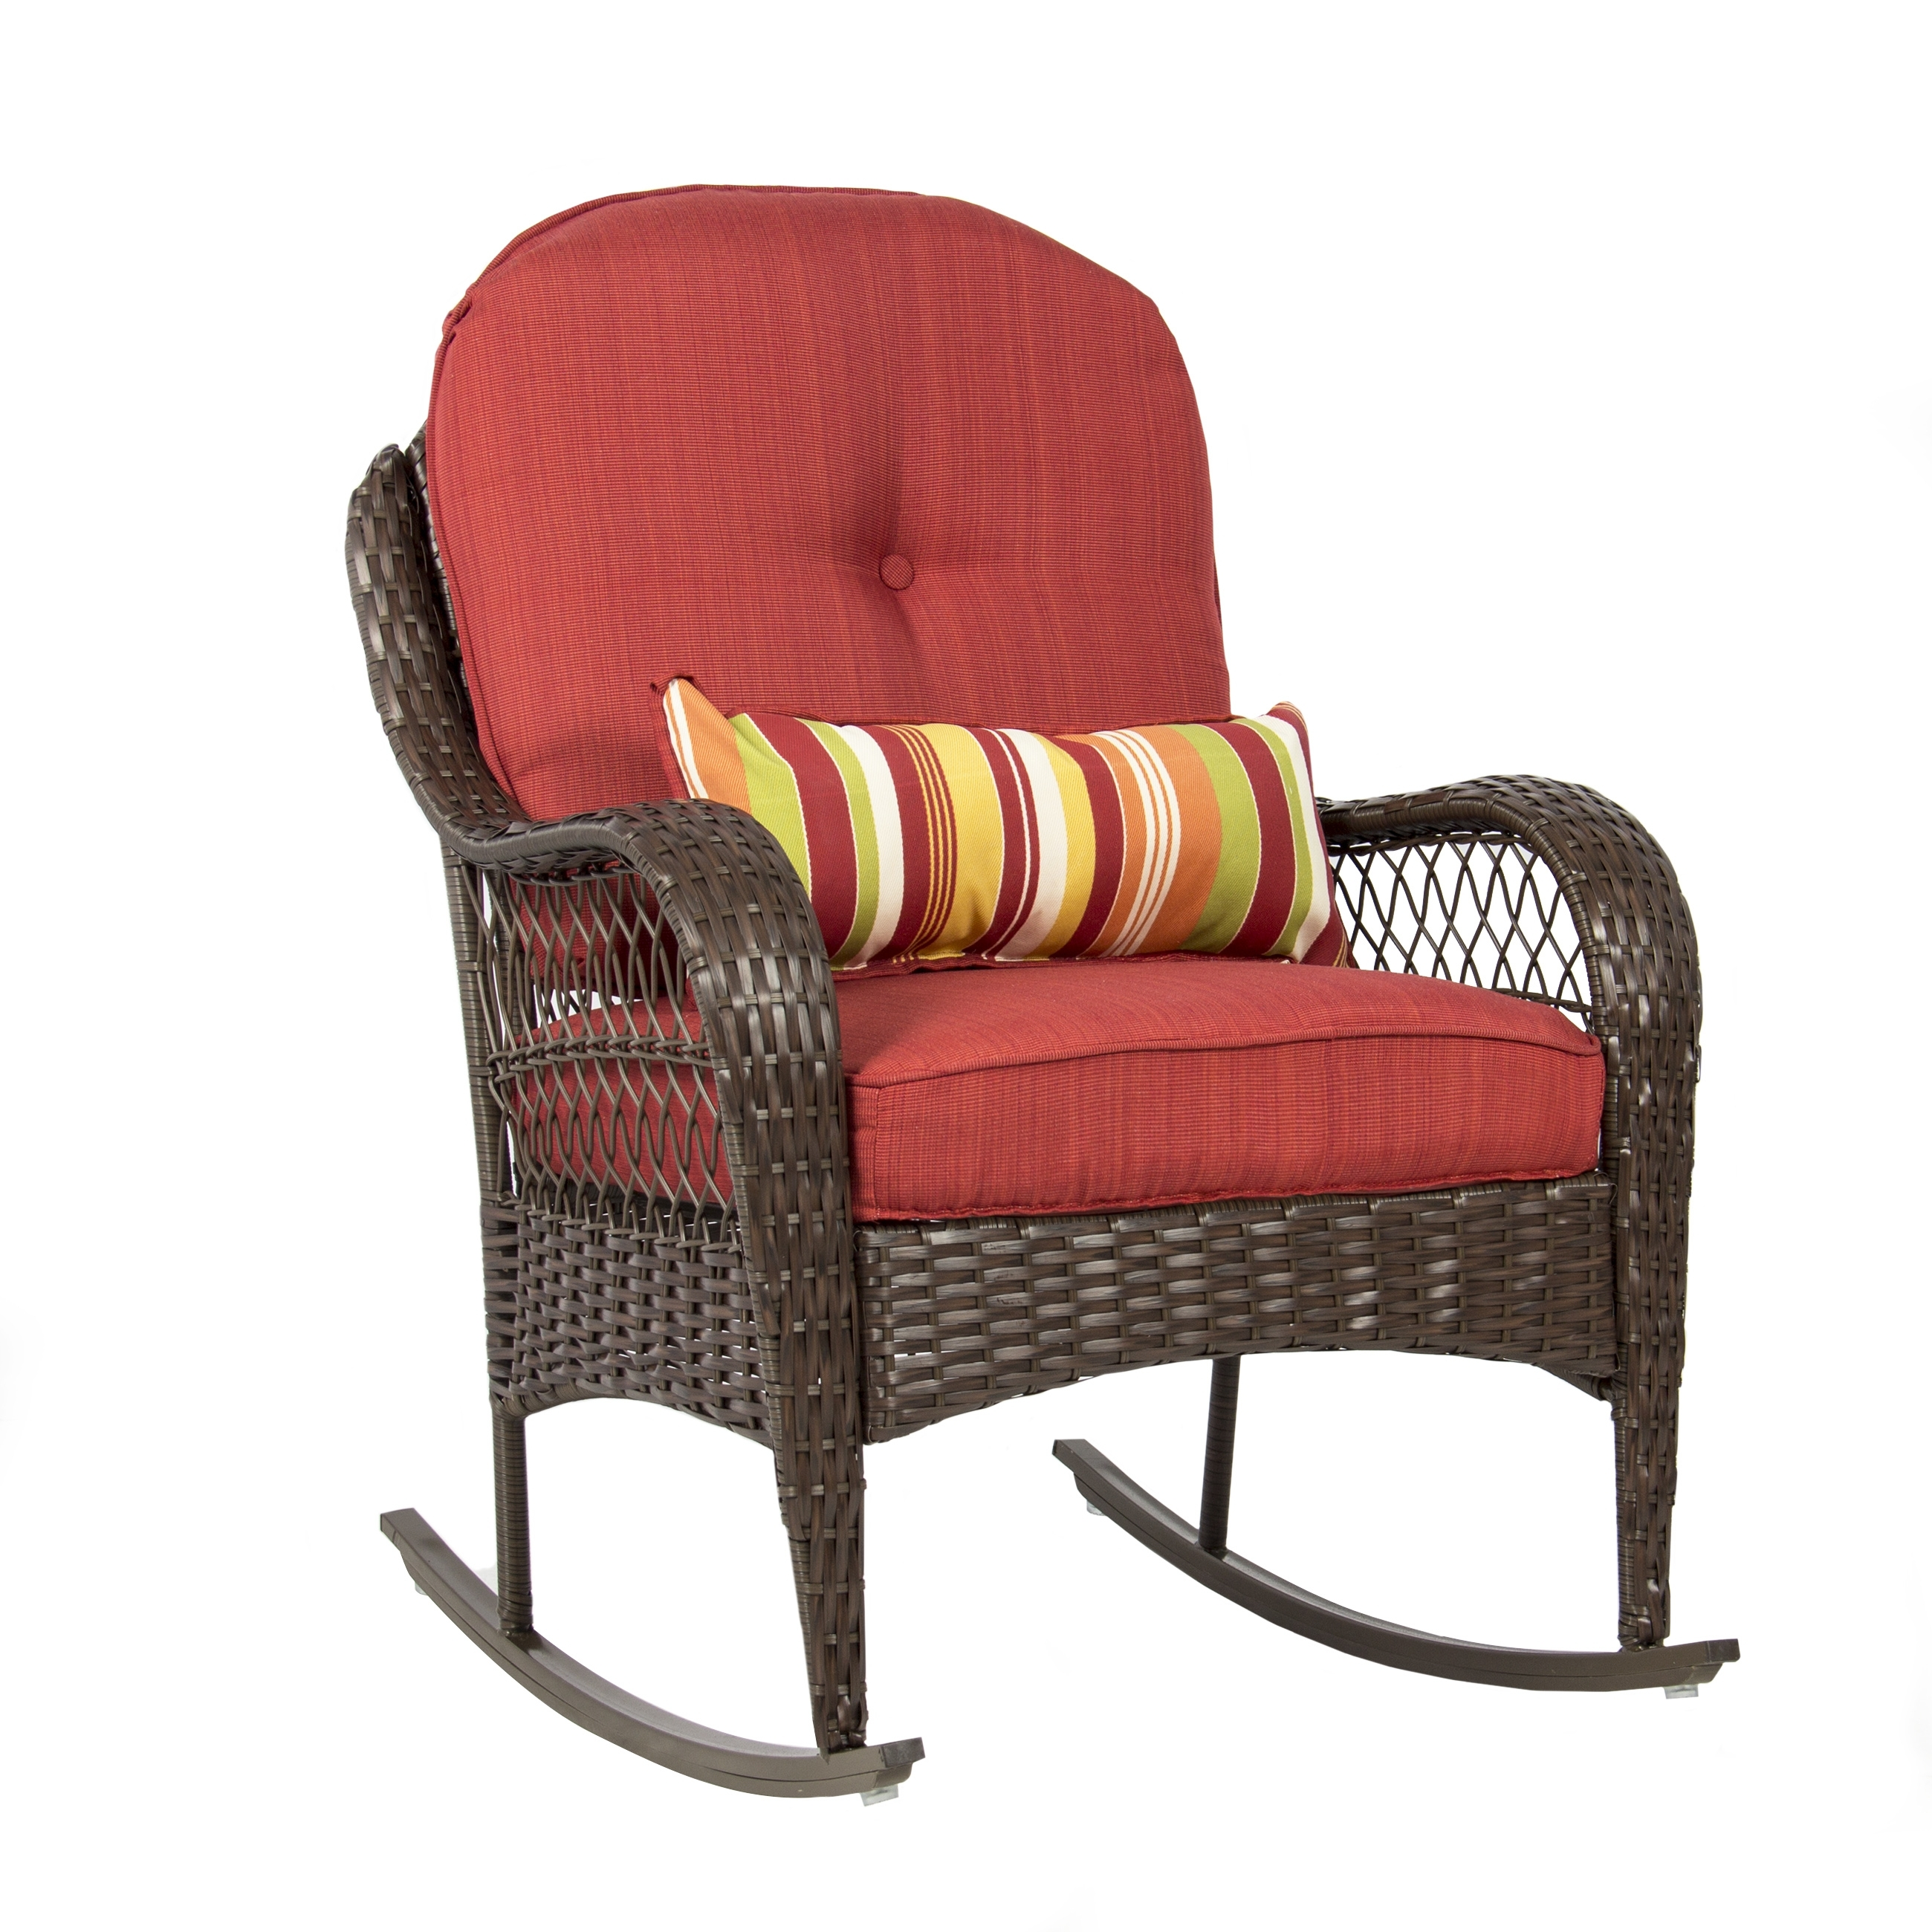 Best Choice Products Wicker Rocking Chair Patio Porch Deck Furniture Inside Rocking Chairs At Walmart (#4 of 15)